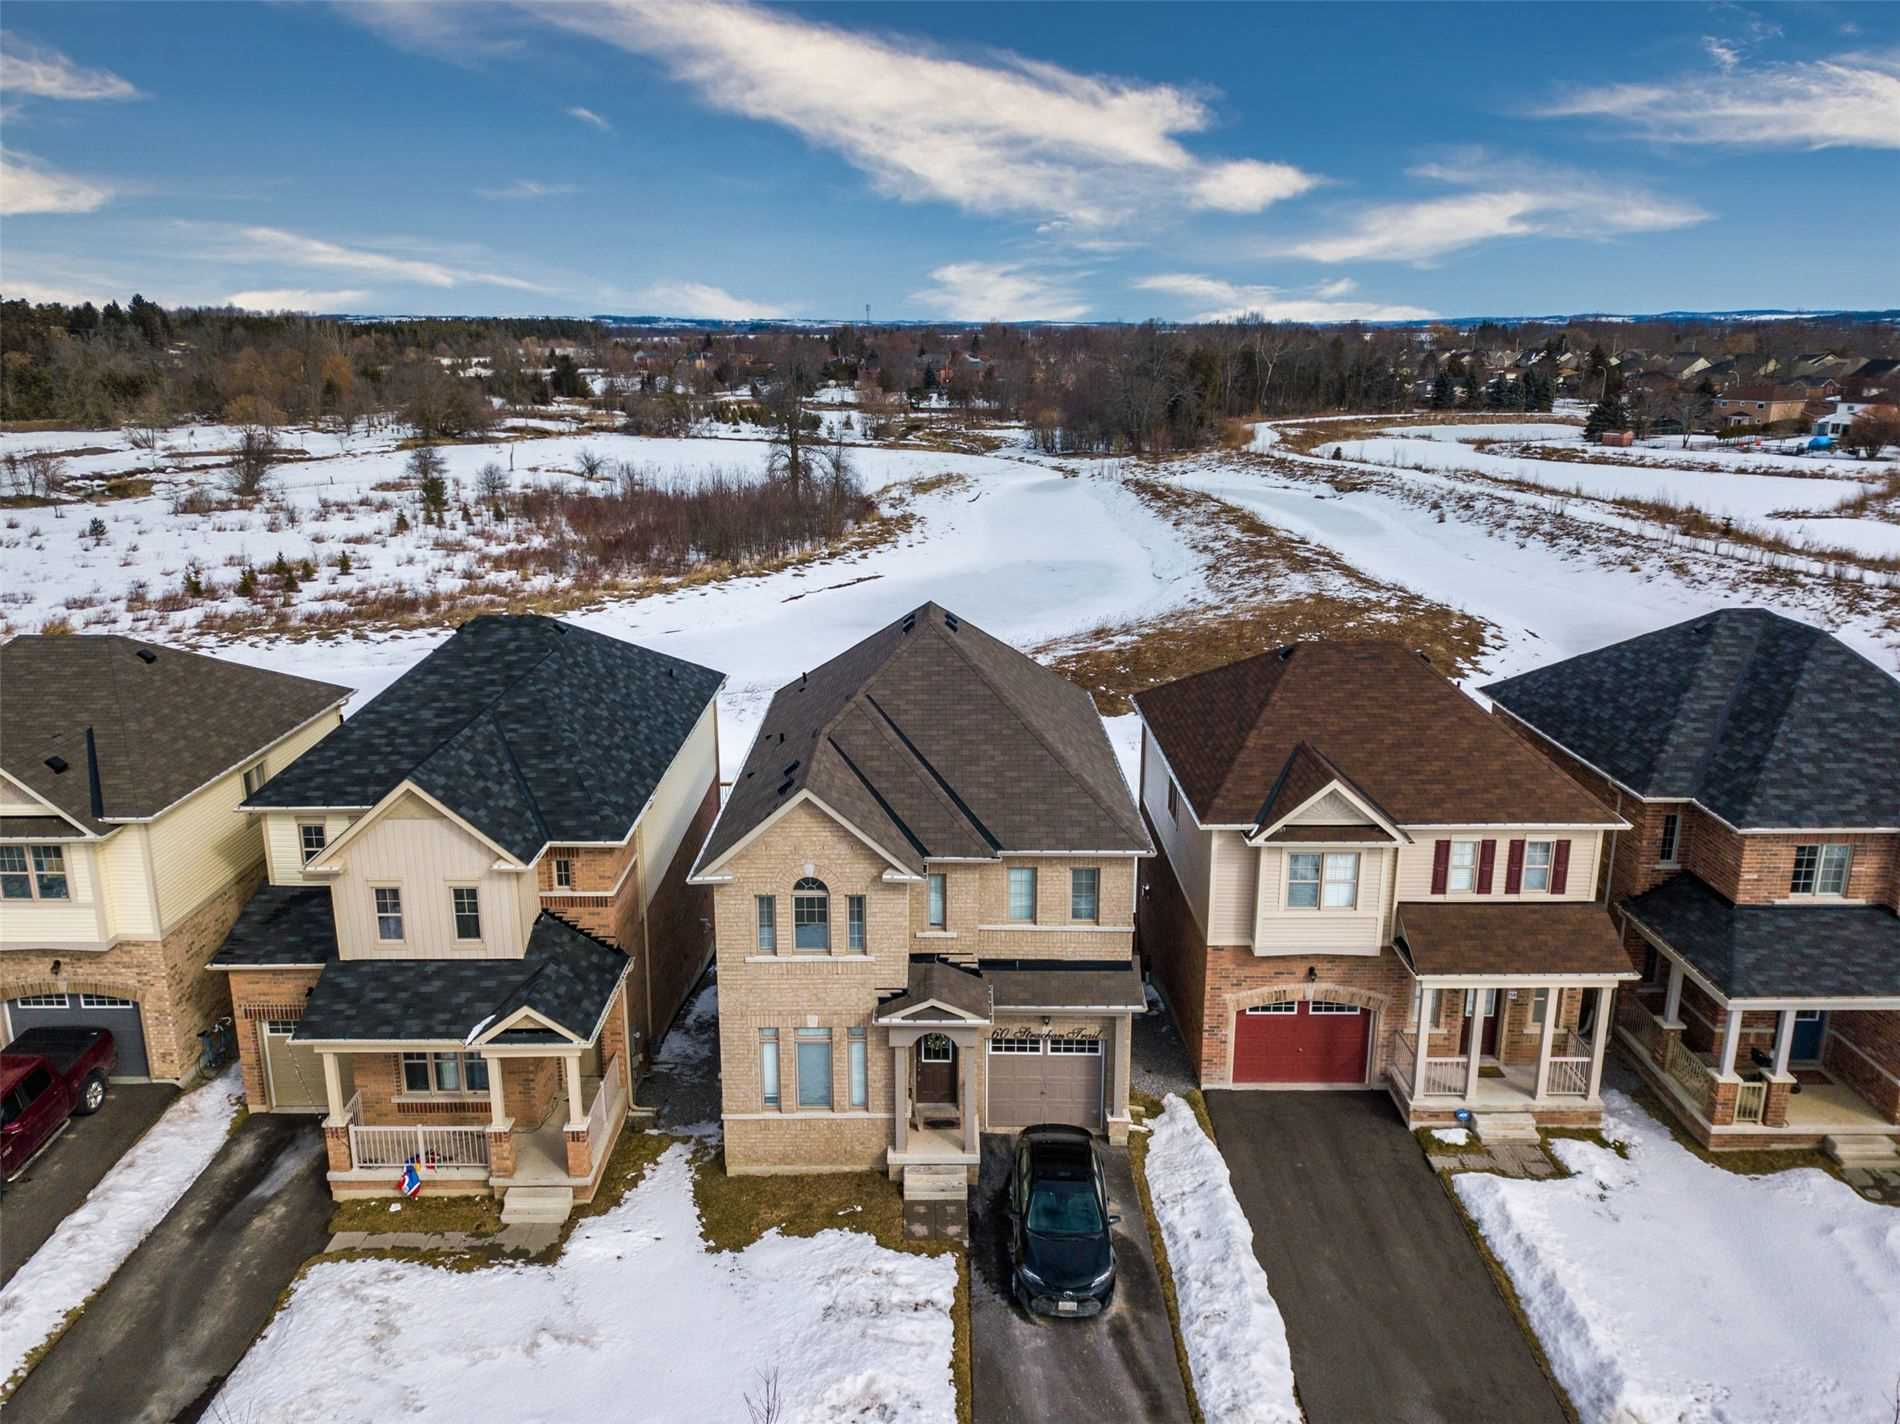 Beautiful 4 Bedroom Detached Home Located In The Small Quaint But Growing Community Of Beeton. Perfectly Situated On A Ravine Lot, This Home Backs Onto Greenery And A Creek. This Home Features A Walk Out Basement With Lots Of Light And Room For An Additional Entertainment Space And/Or 5th Bedroom.